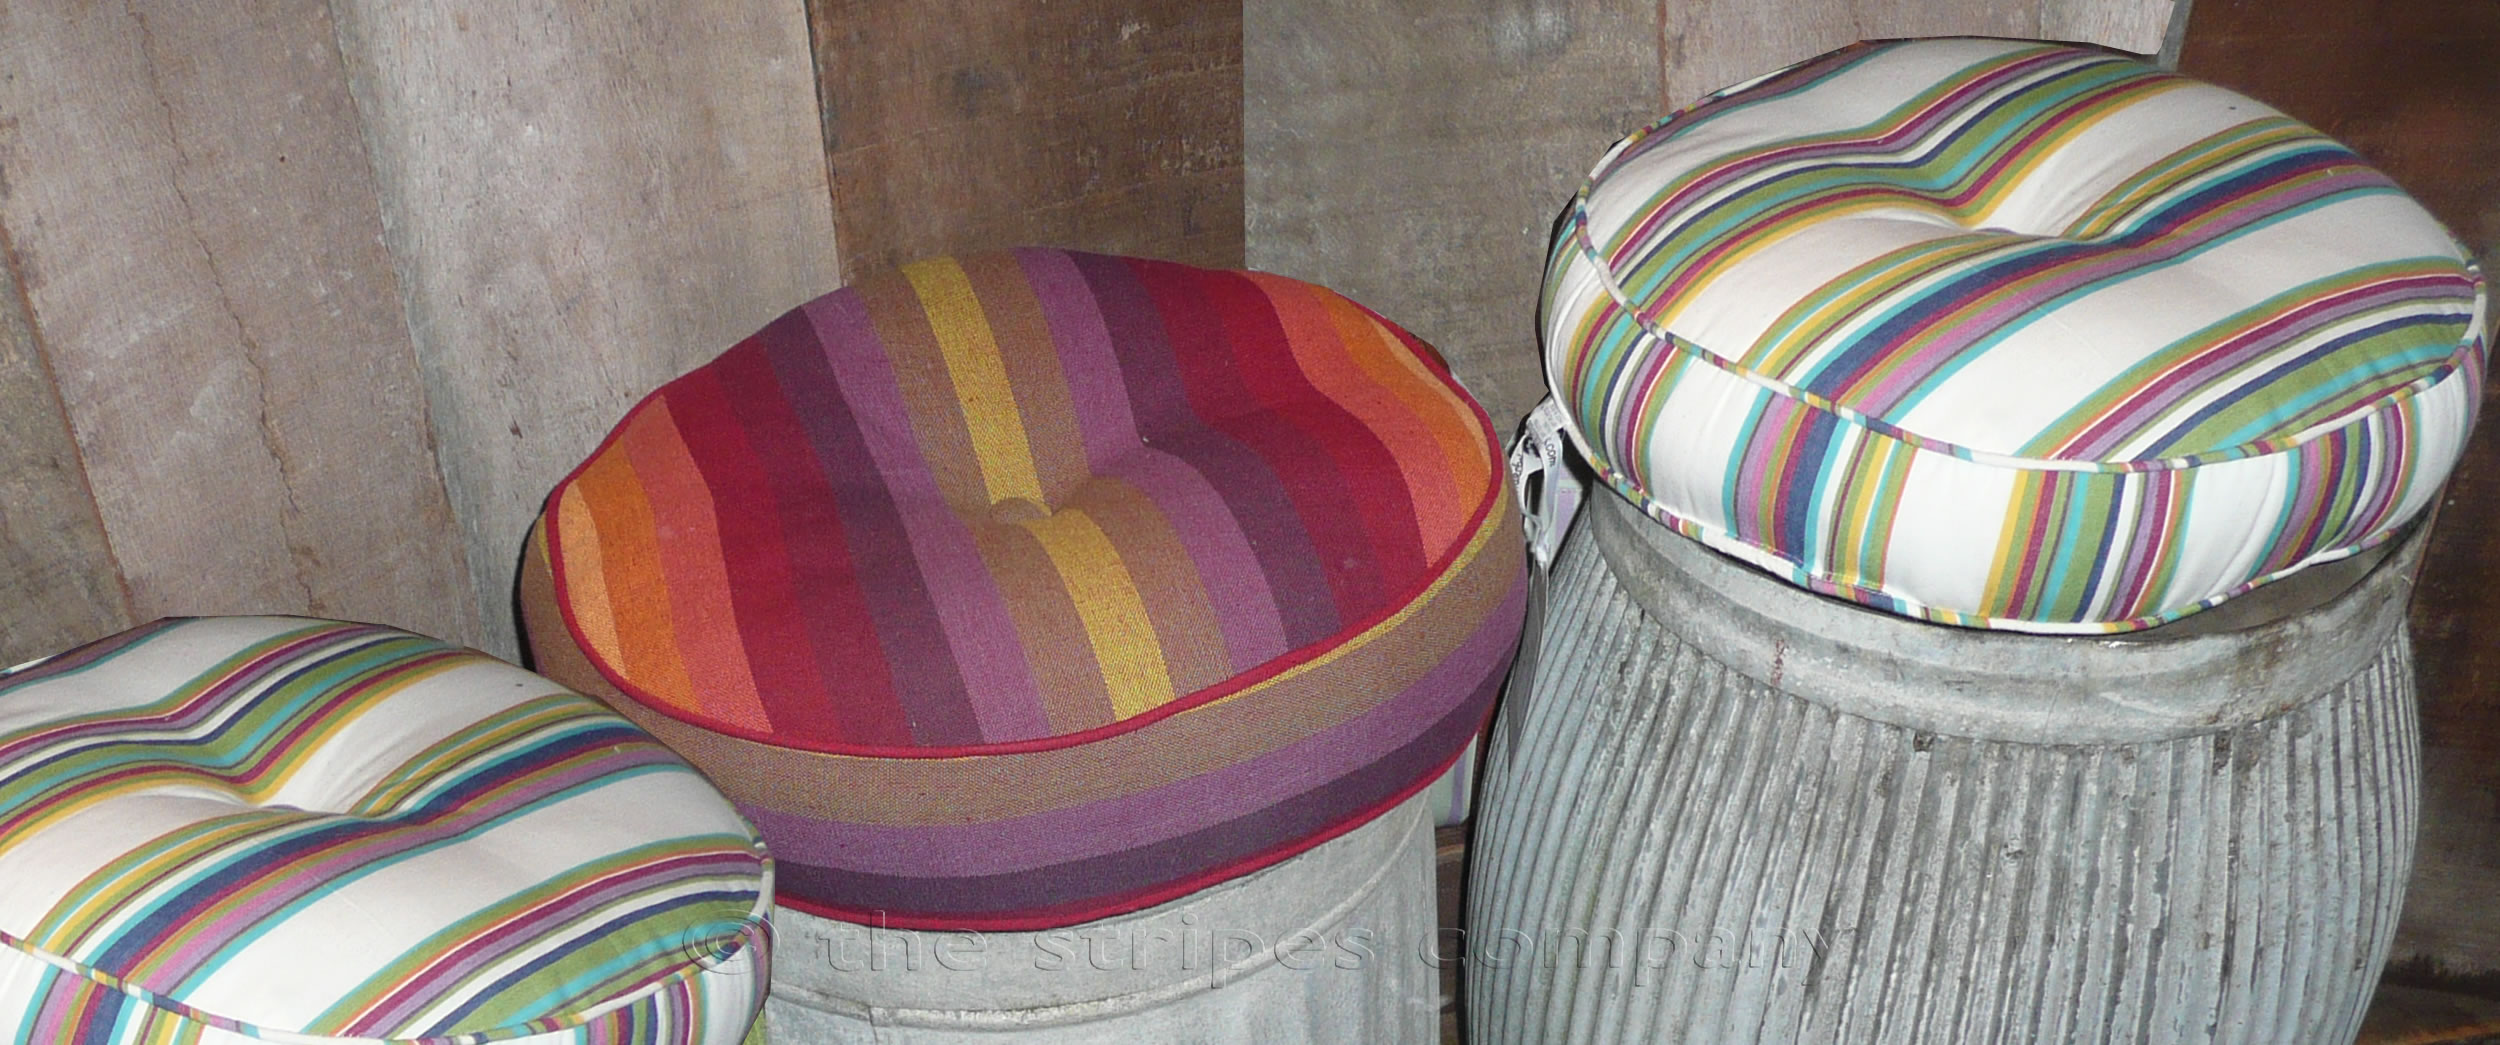 Round Striped Cushions | Piped Round Cushions